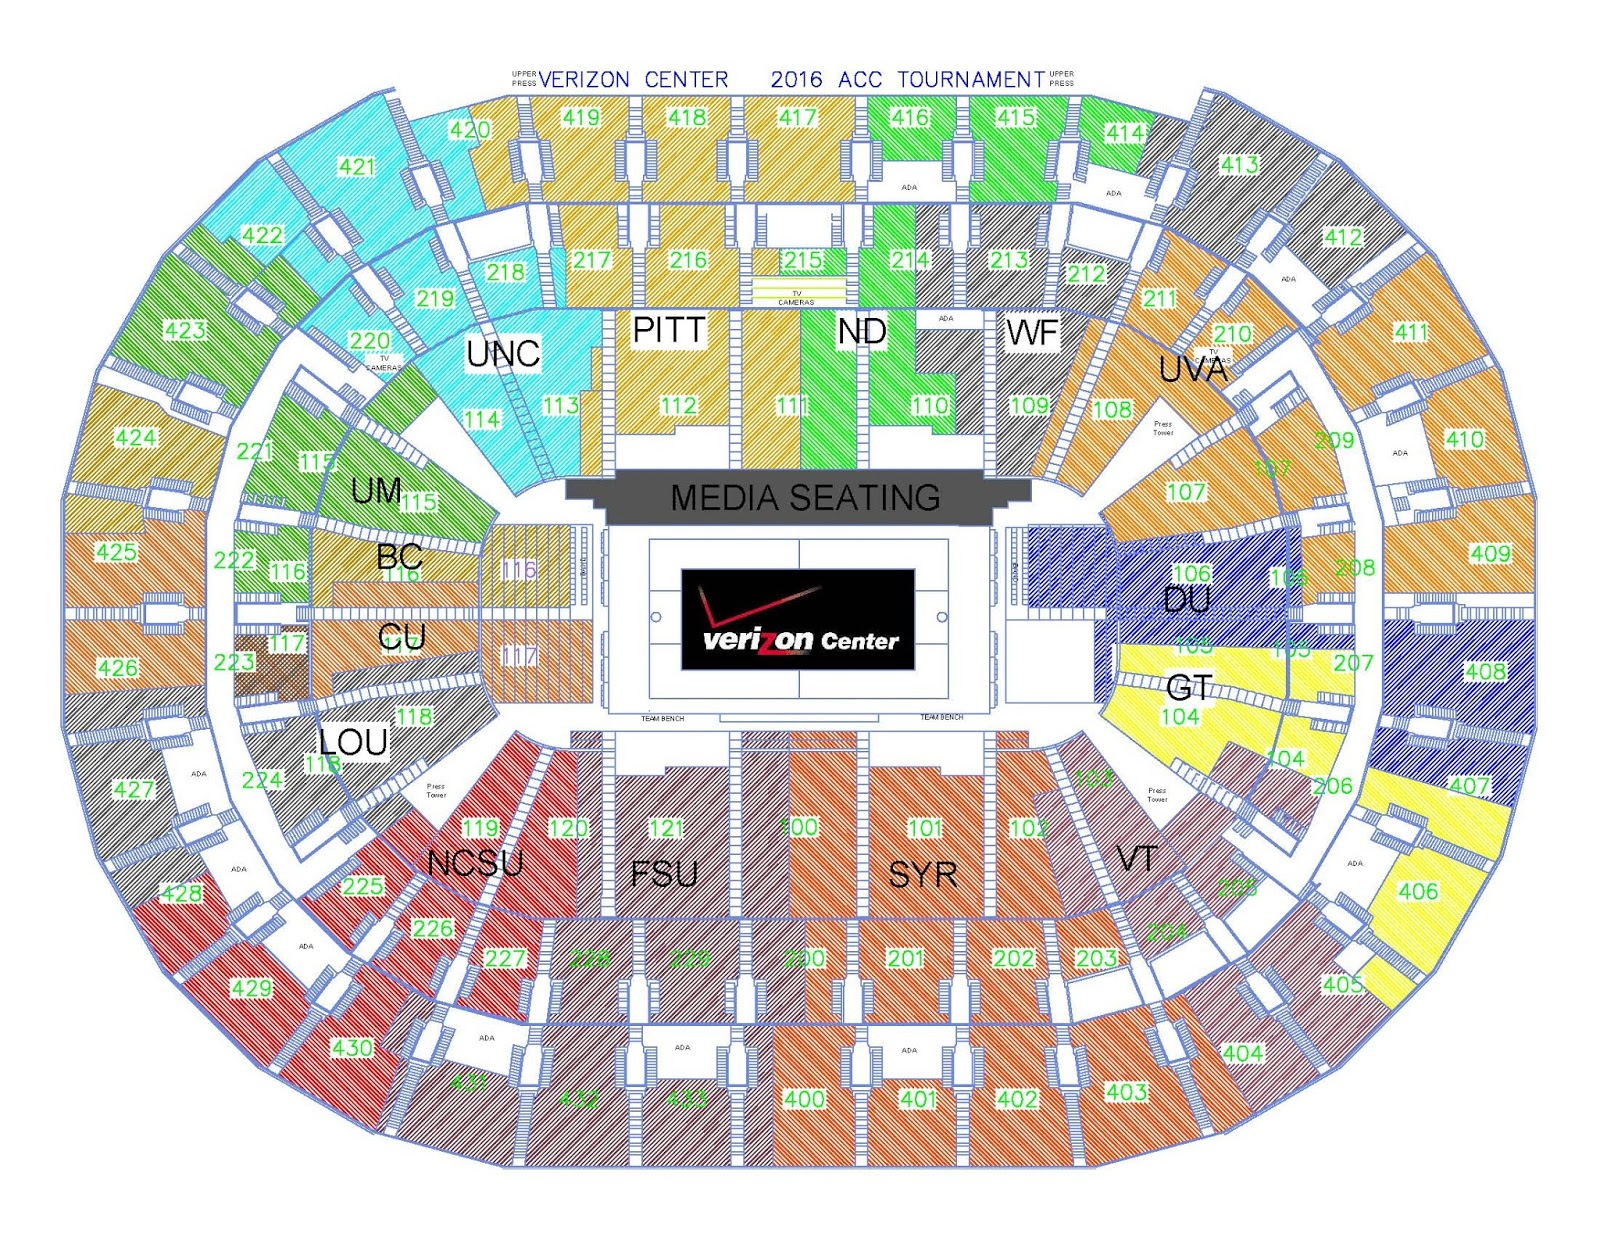 verizon center map with Acc Tournament 2016 on T a Bay Times Forum 2 also Amenities further 398587574 further File Mariucci Arena besides 201.